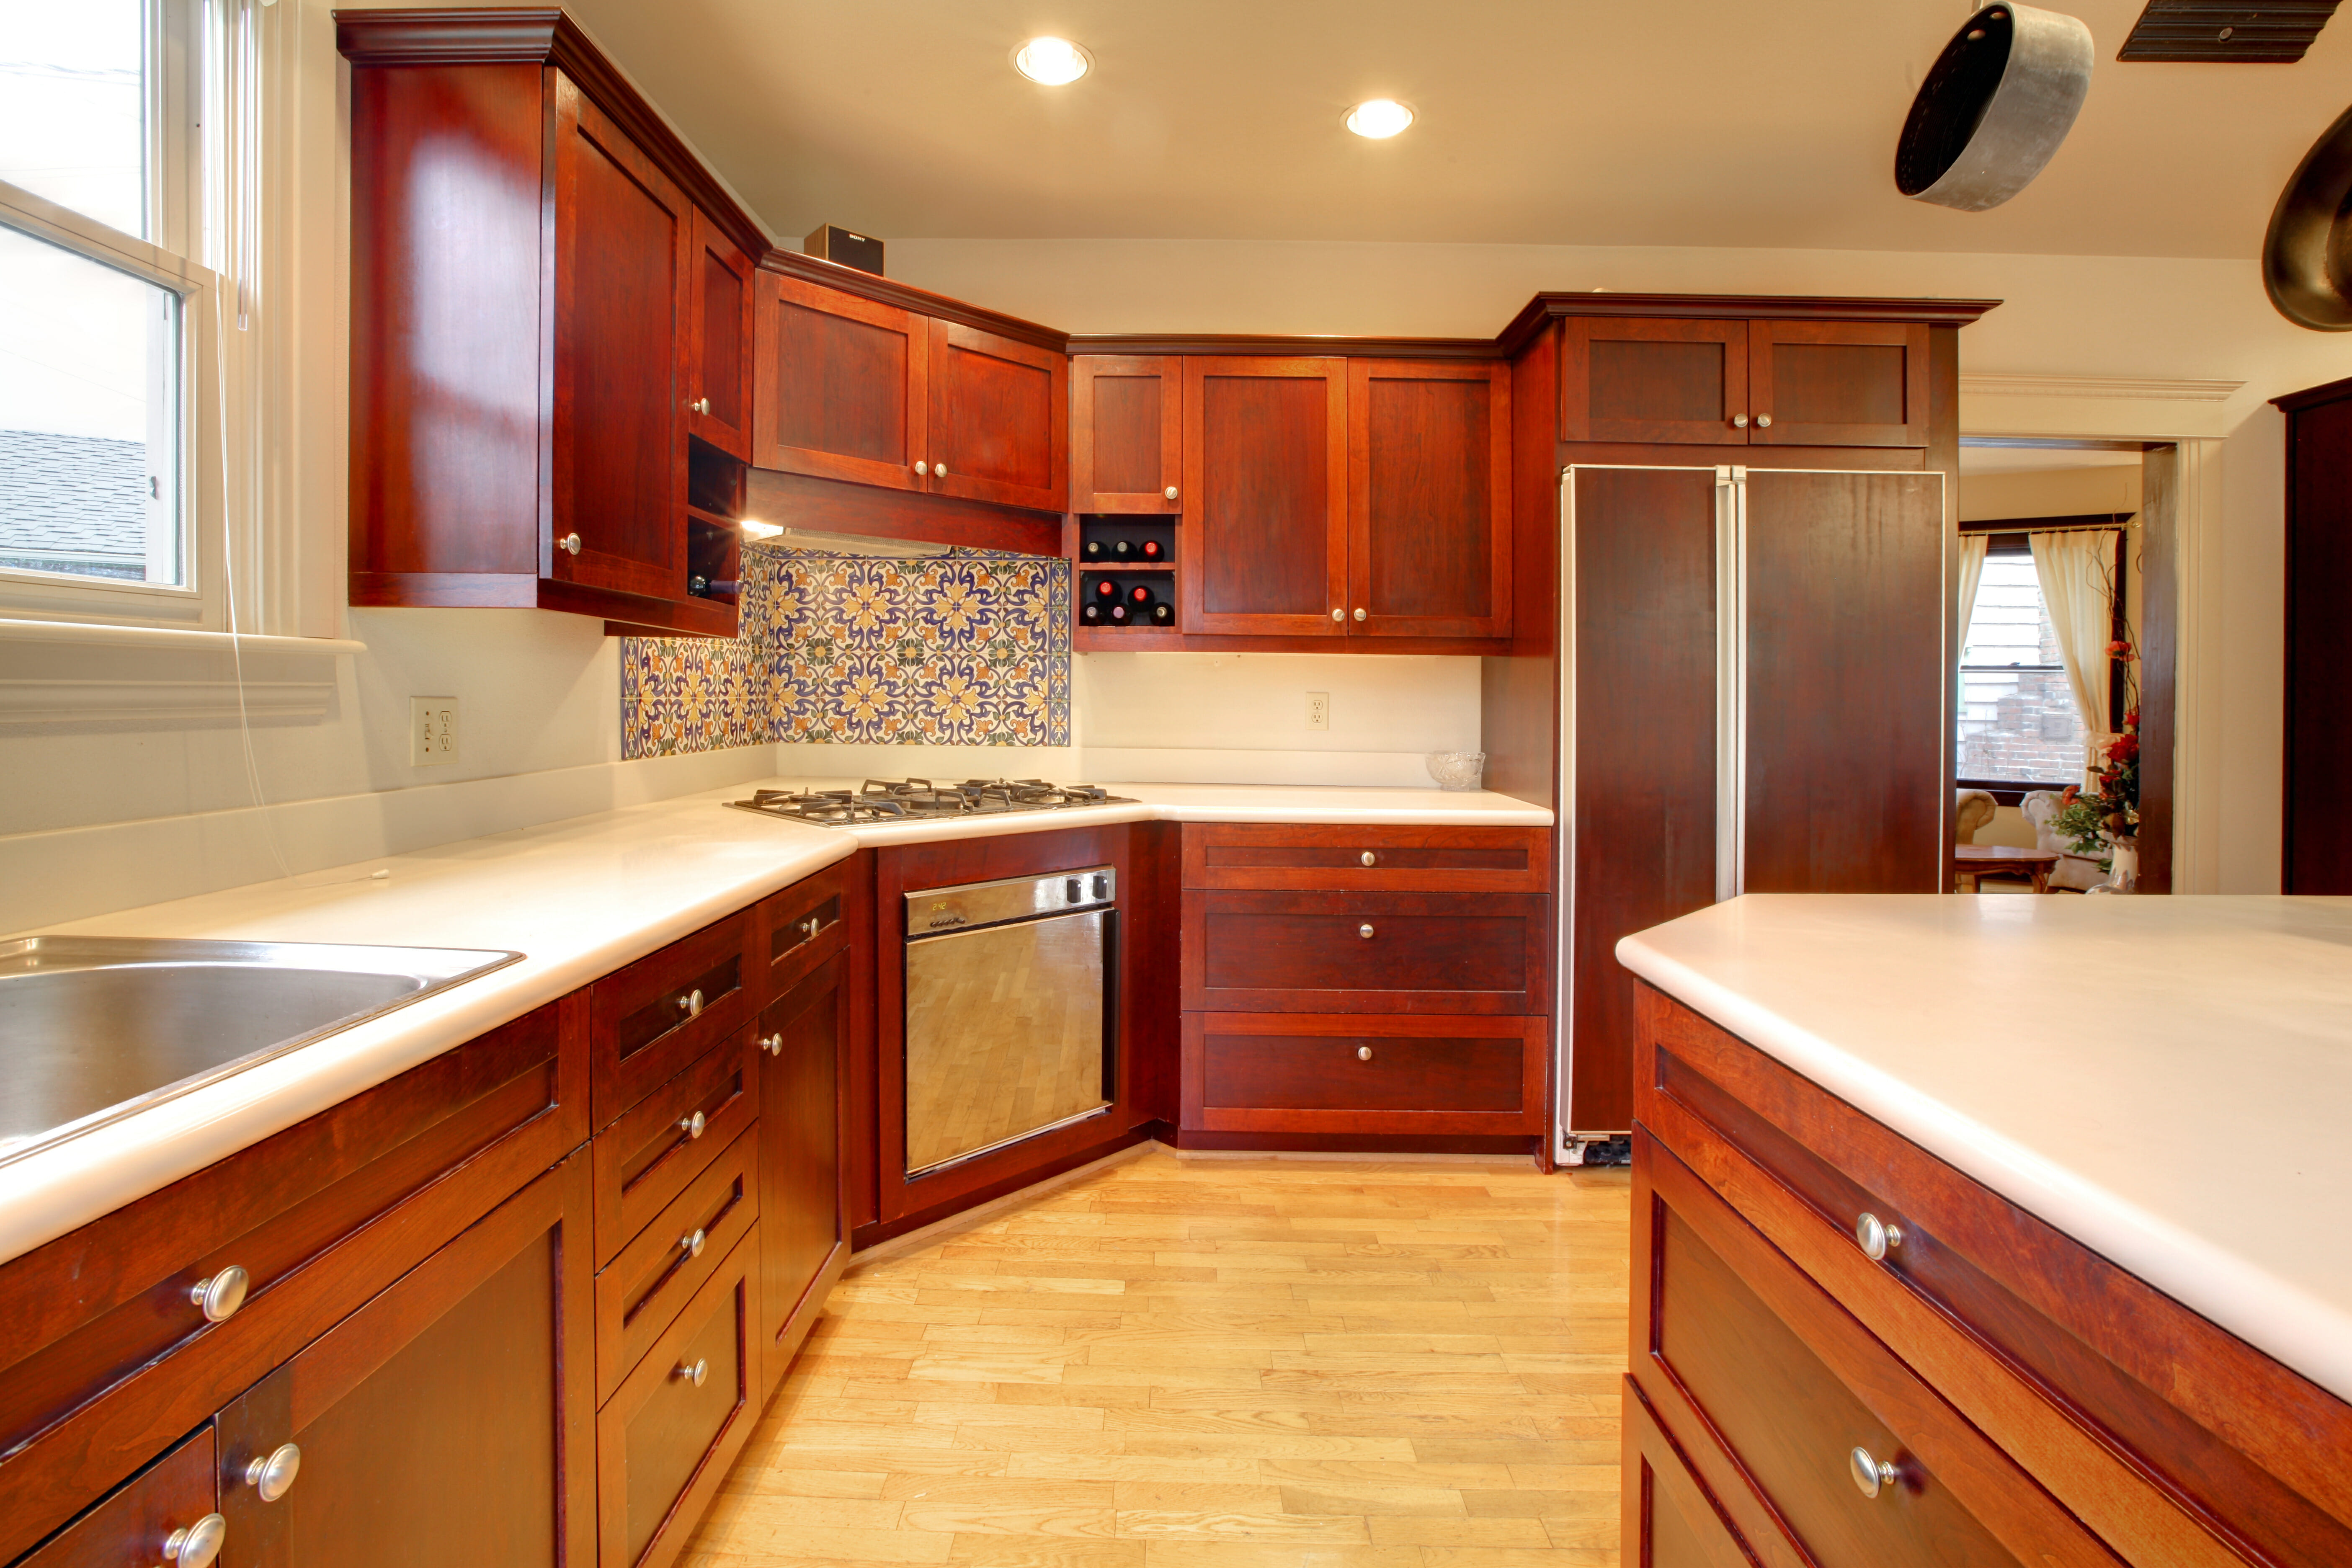 mahogany kitchen cabinets pictures of kitchen cabinets Mahogany Kitchen Cabinets